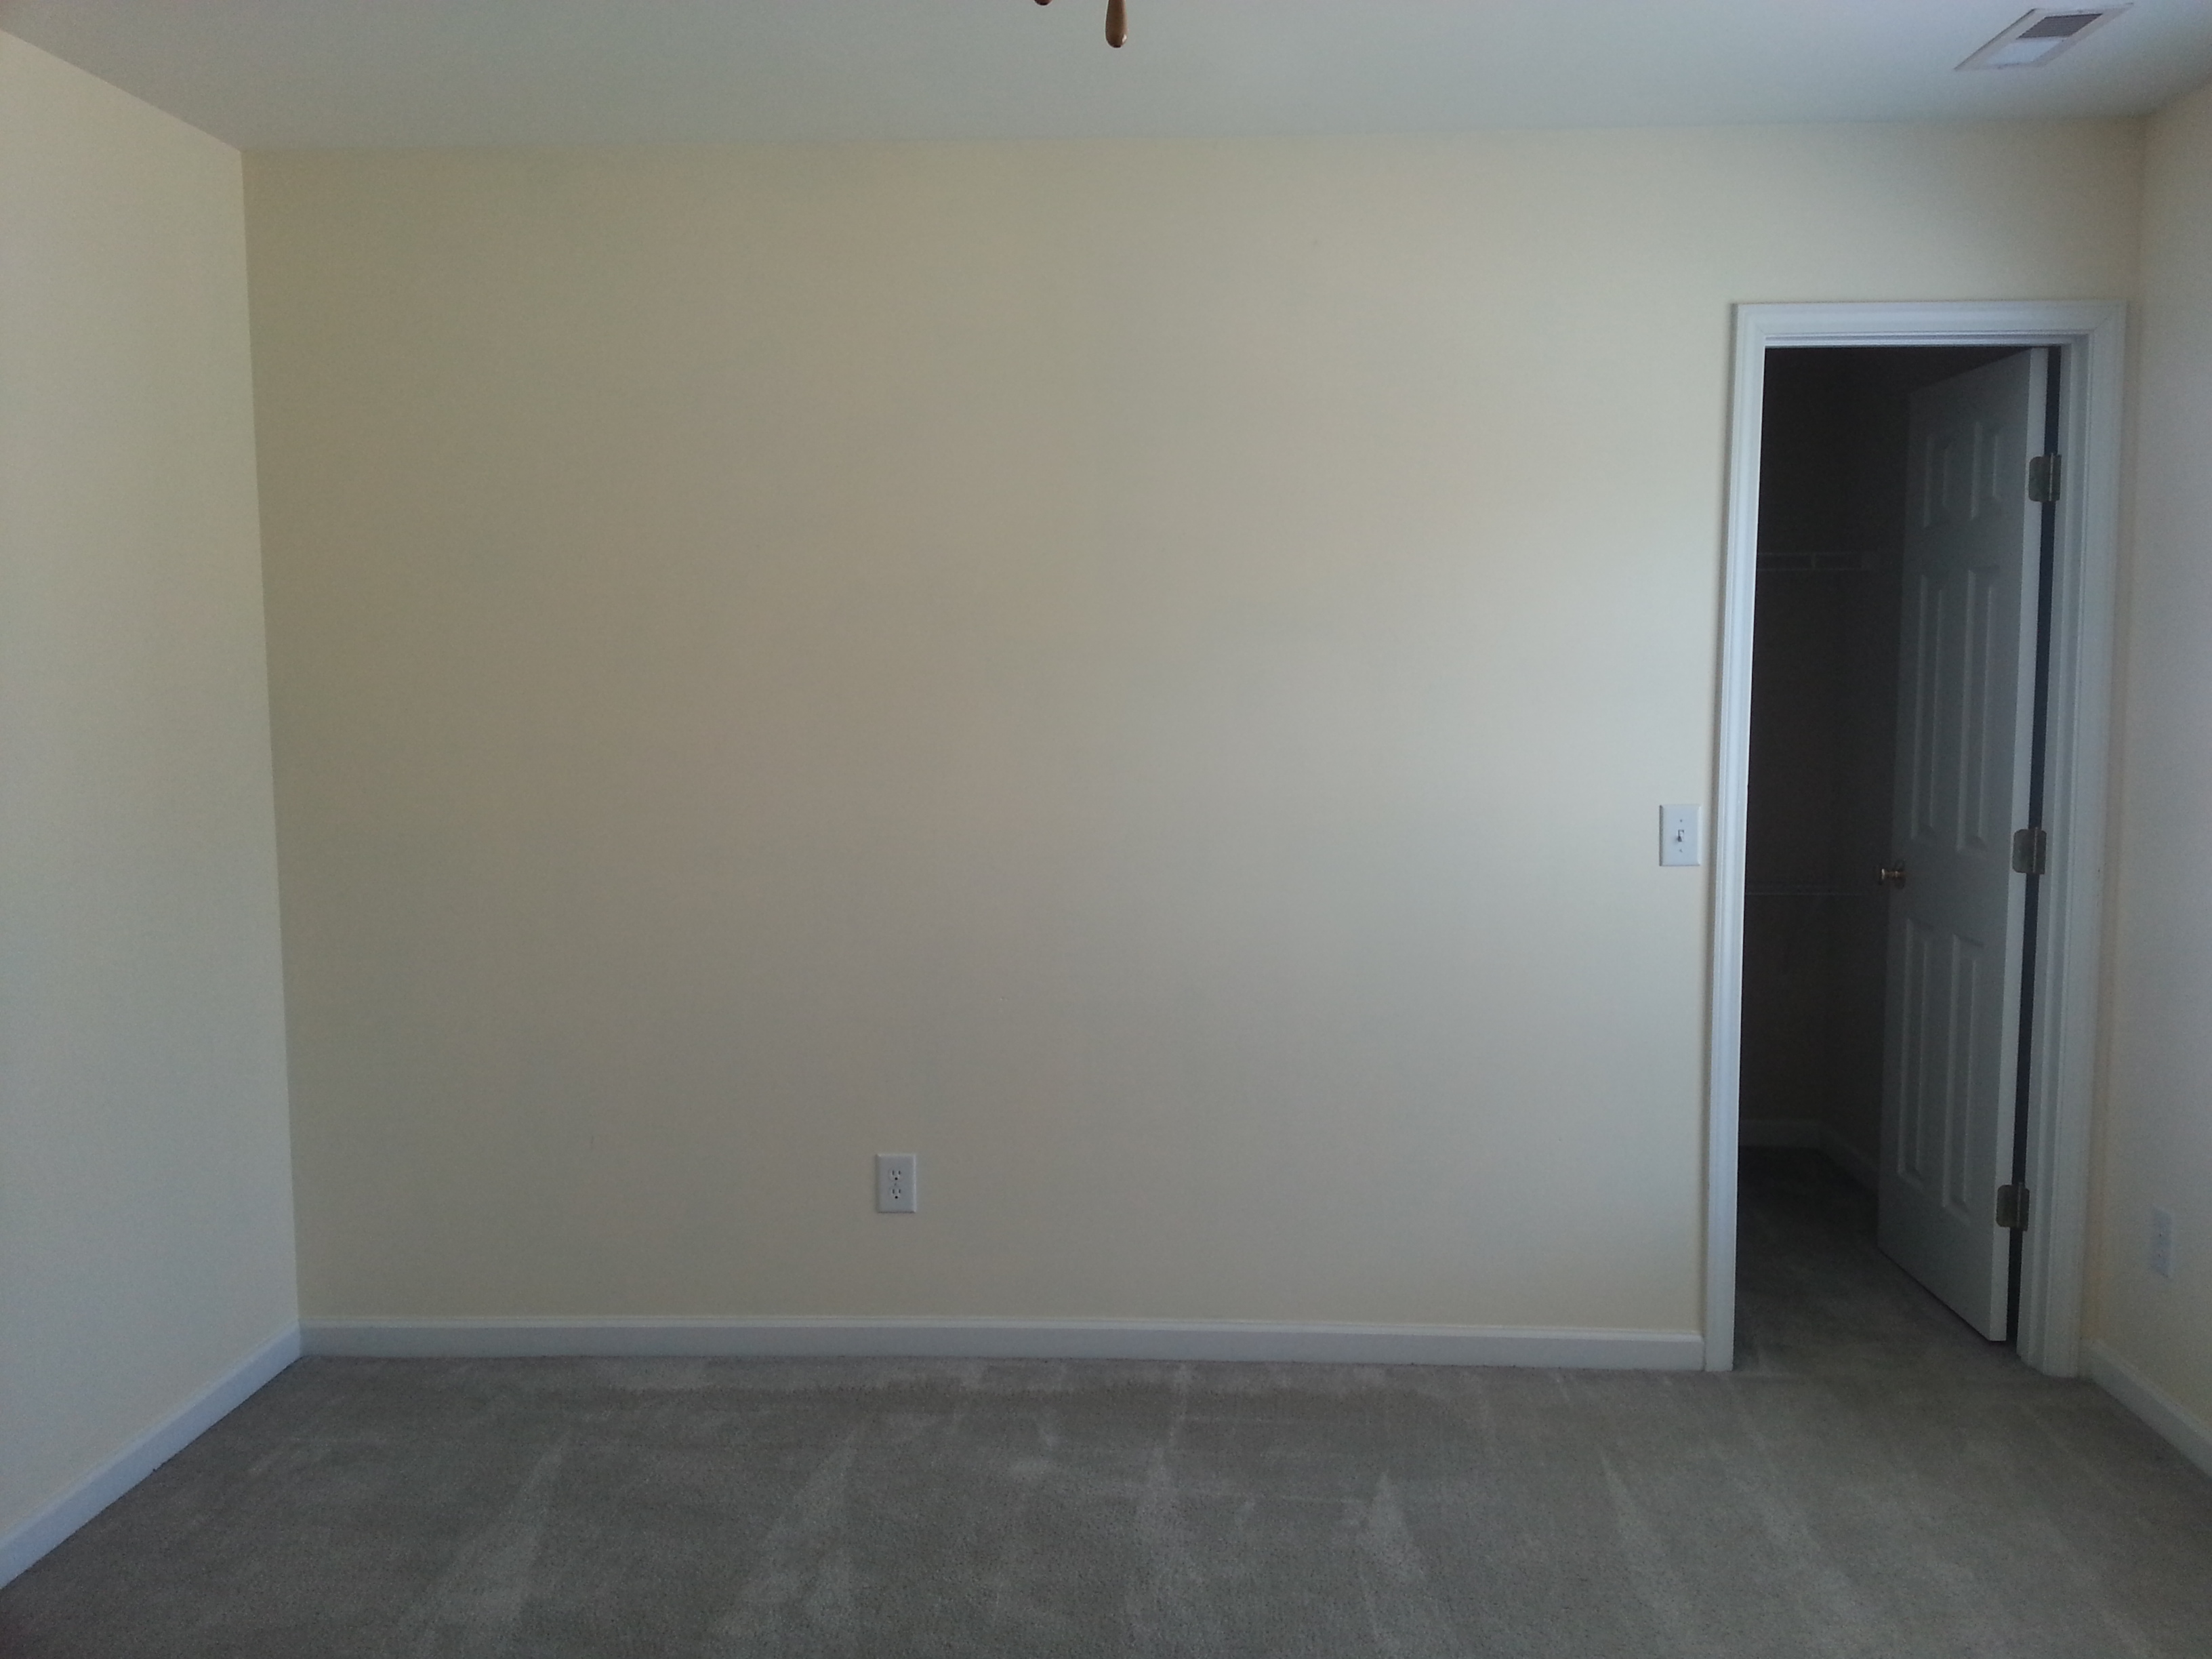 Viewing gallery for empty bedroom with bed